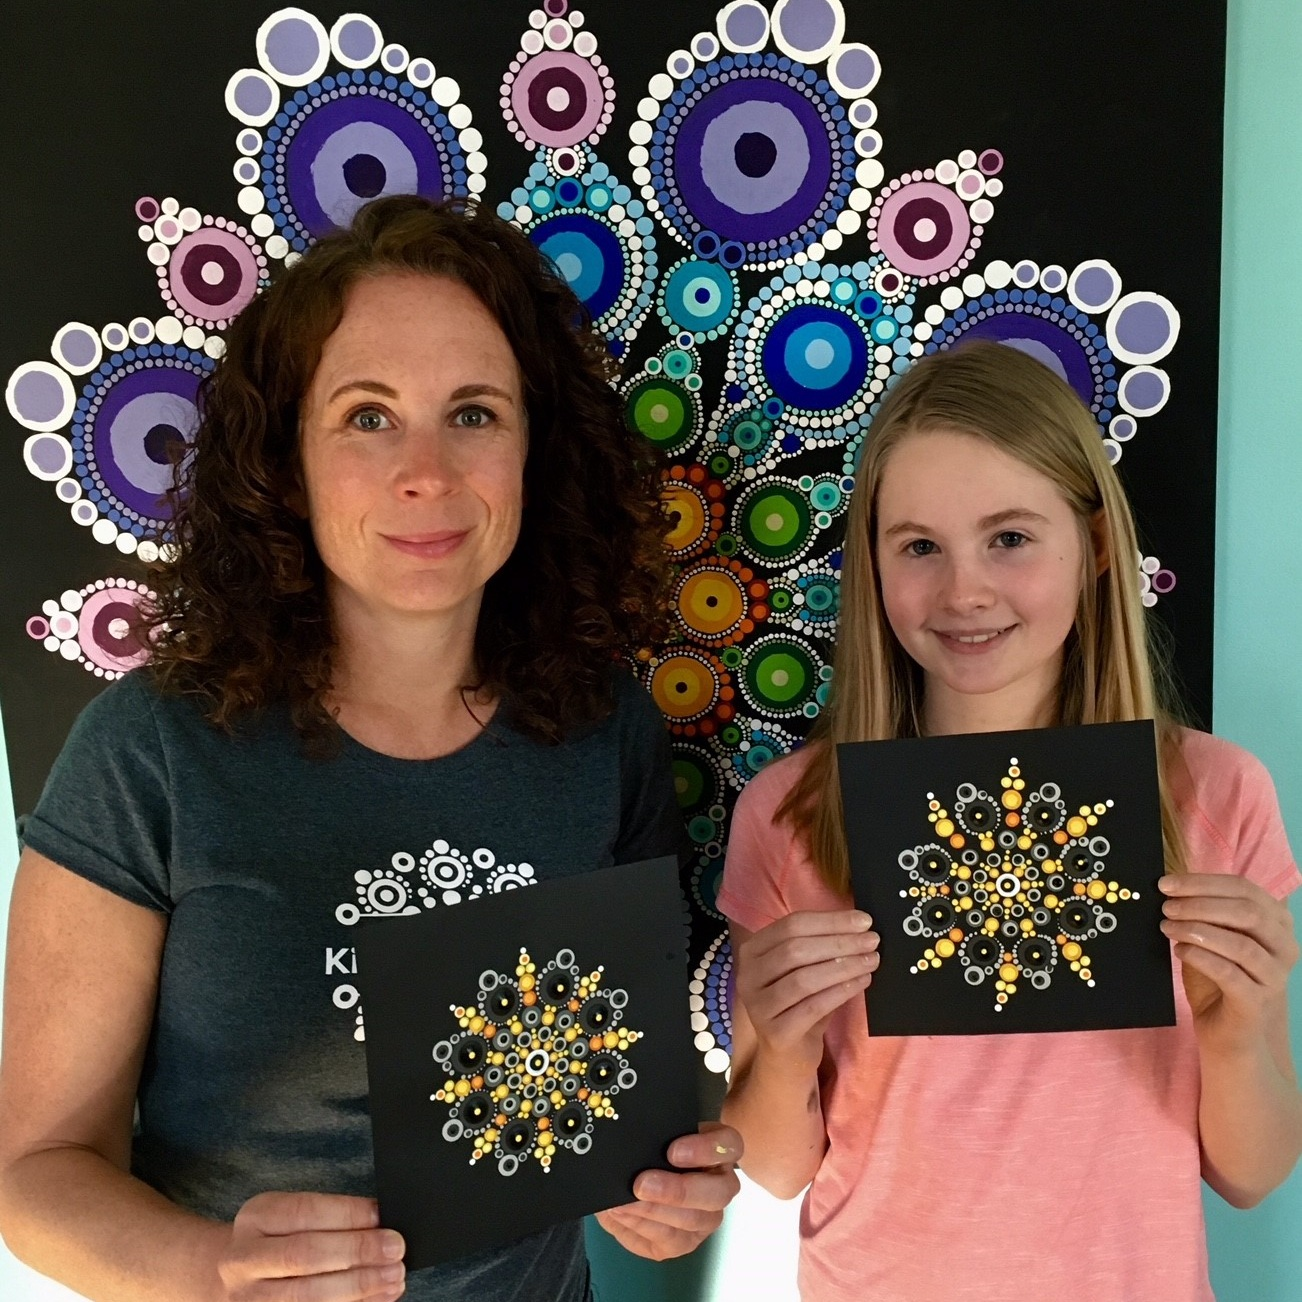 Benefits to participants - There are numerous benefits an individual may experience when creating art and mandalas and through experiencing a greater connection to others in Otauna's programs.For a list, visit our Healing Benefits page.